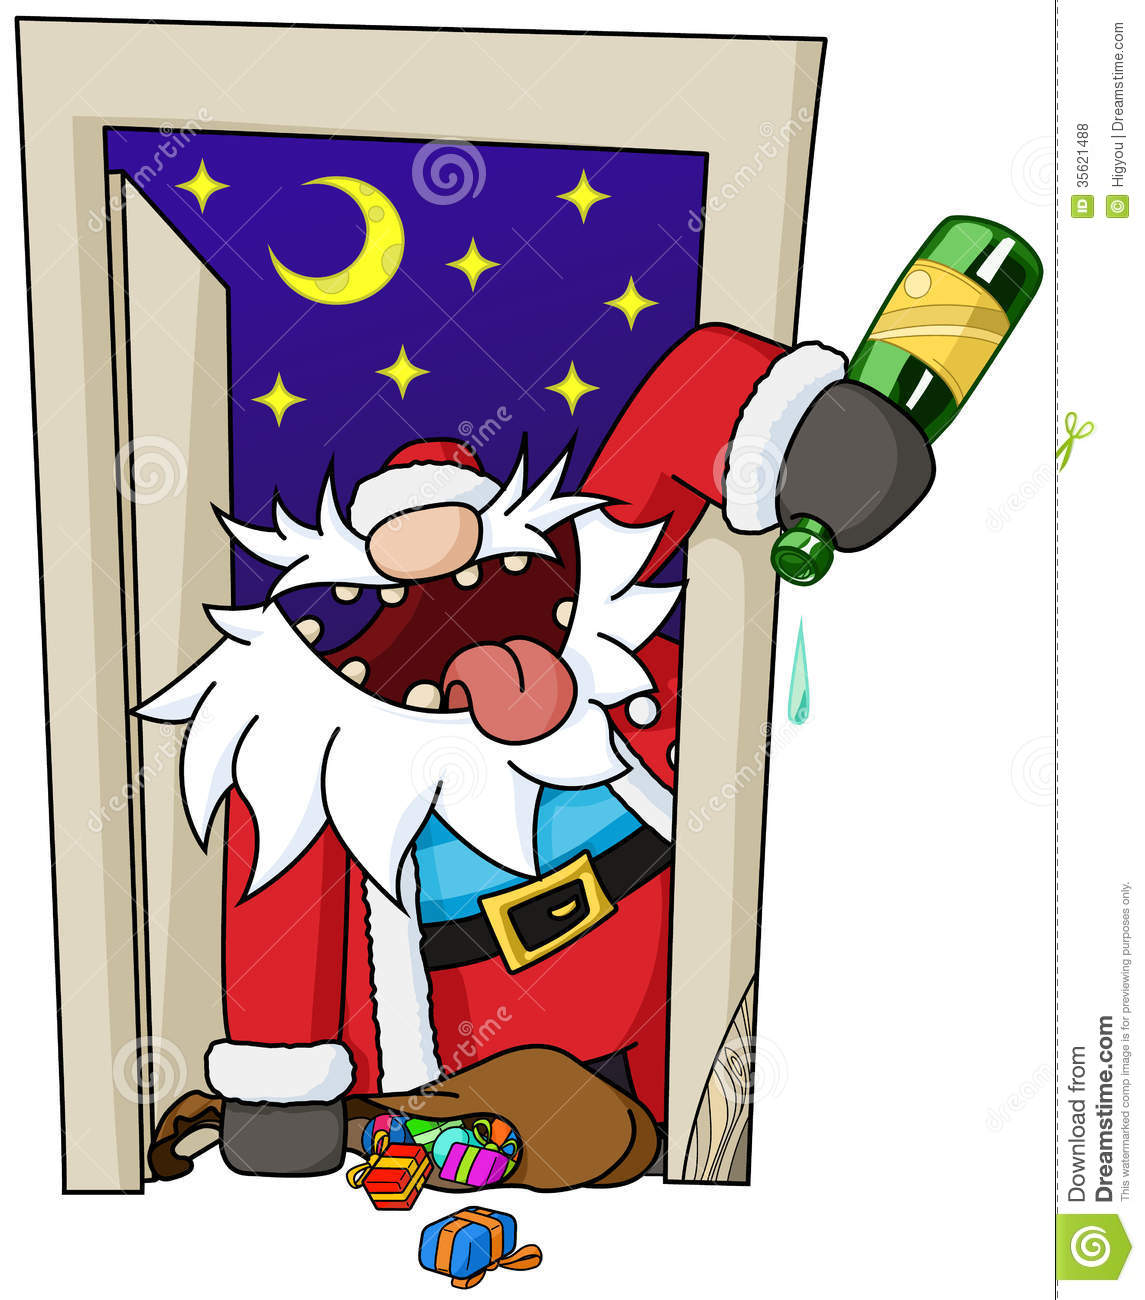 Christmas Party Images Cartoon.Party Christmas Cartoon Door Stock Vector Illustration Of